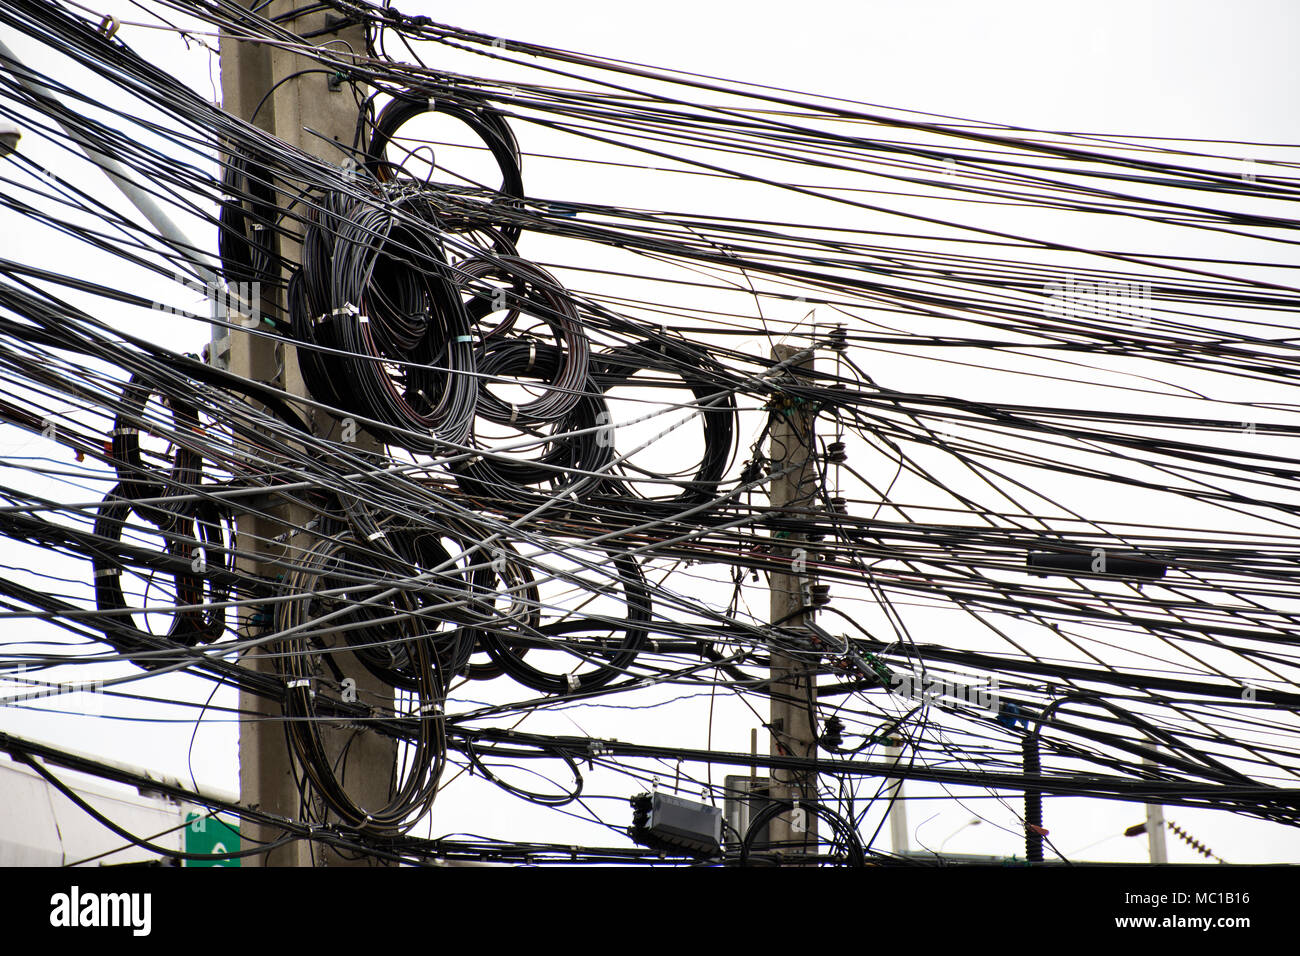 Many Wires Messy With Power Line Cables Transformers And Phone Wiring Lines On Old Electricity Pillar Or Utility Pole At Beside Road In Bangkok Thailand